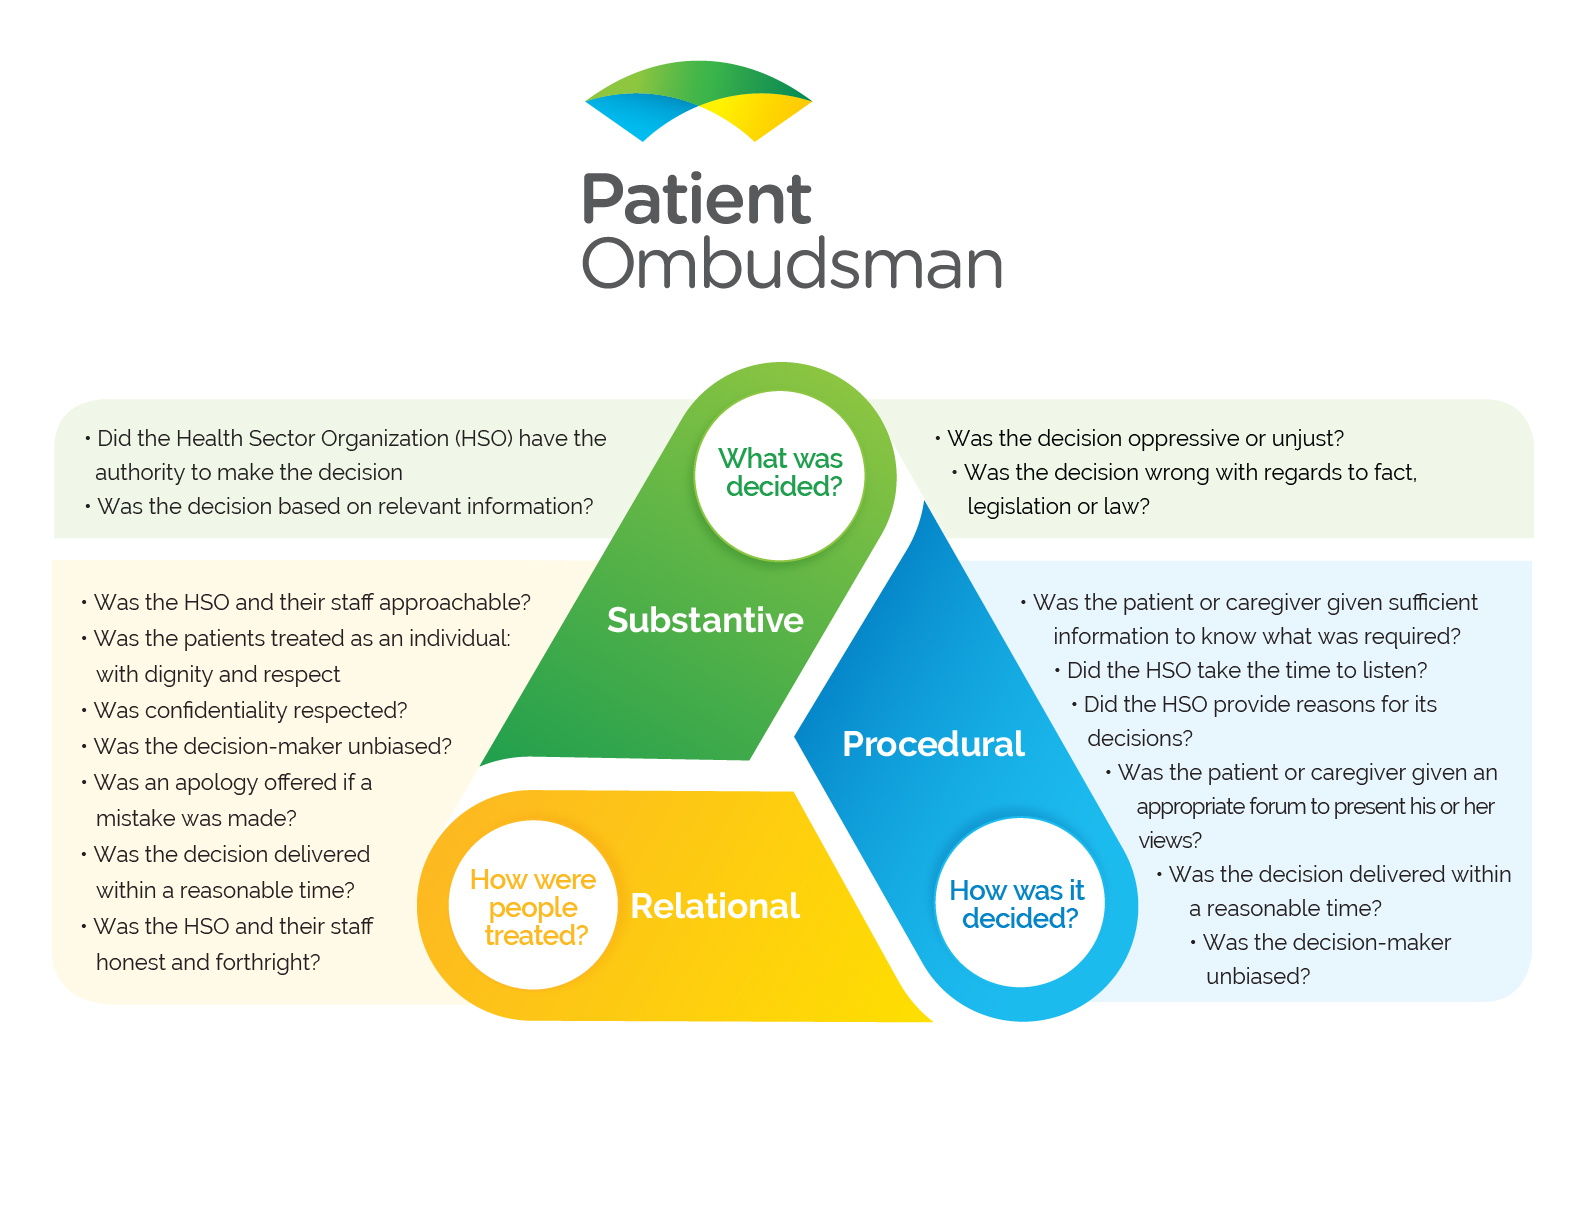 Patient Ombudsman Fairness Triangle